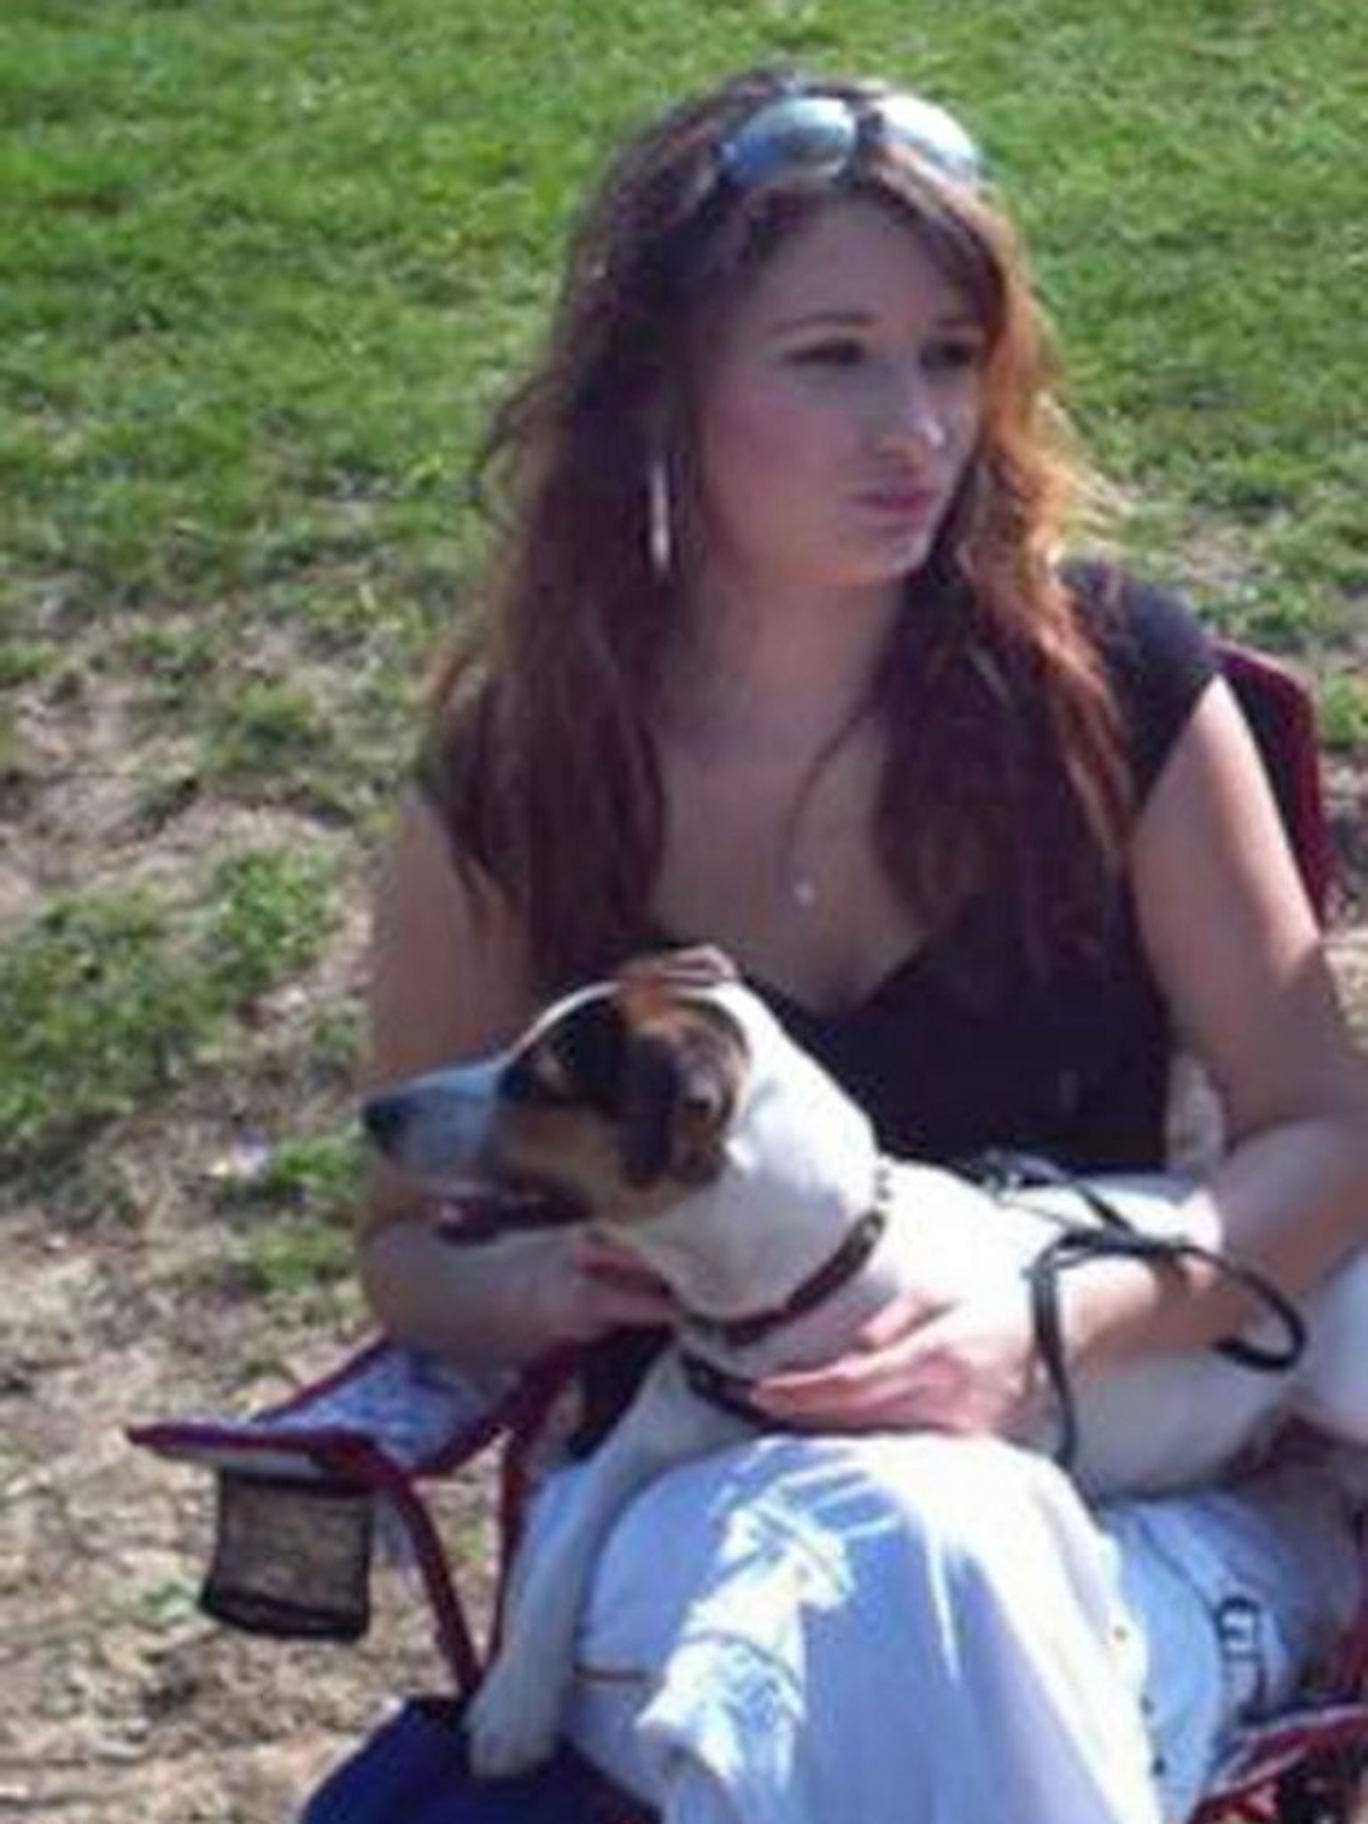 Leanne Meecham died in hospital after being attacked at her home